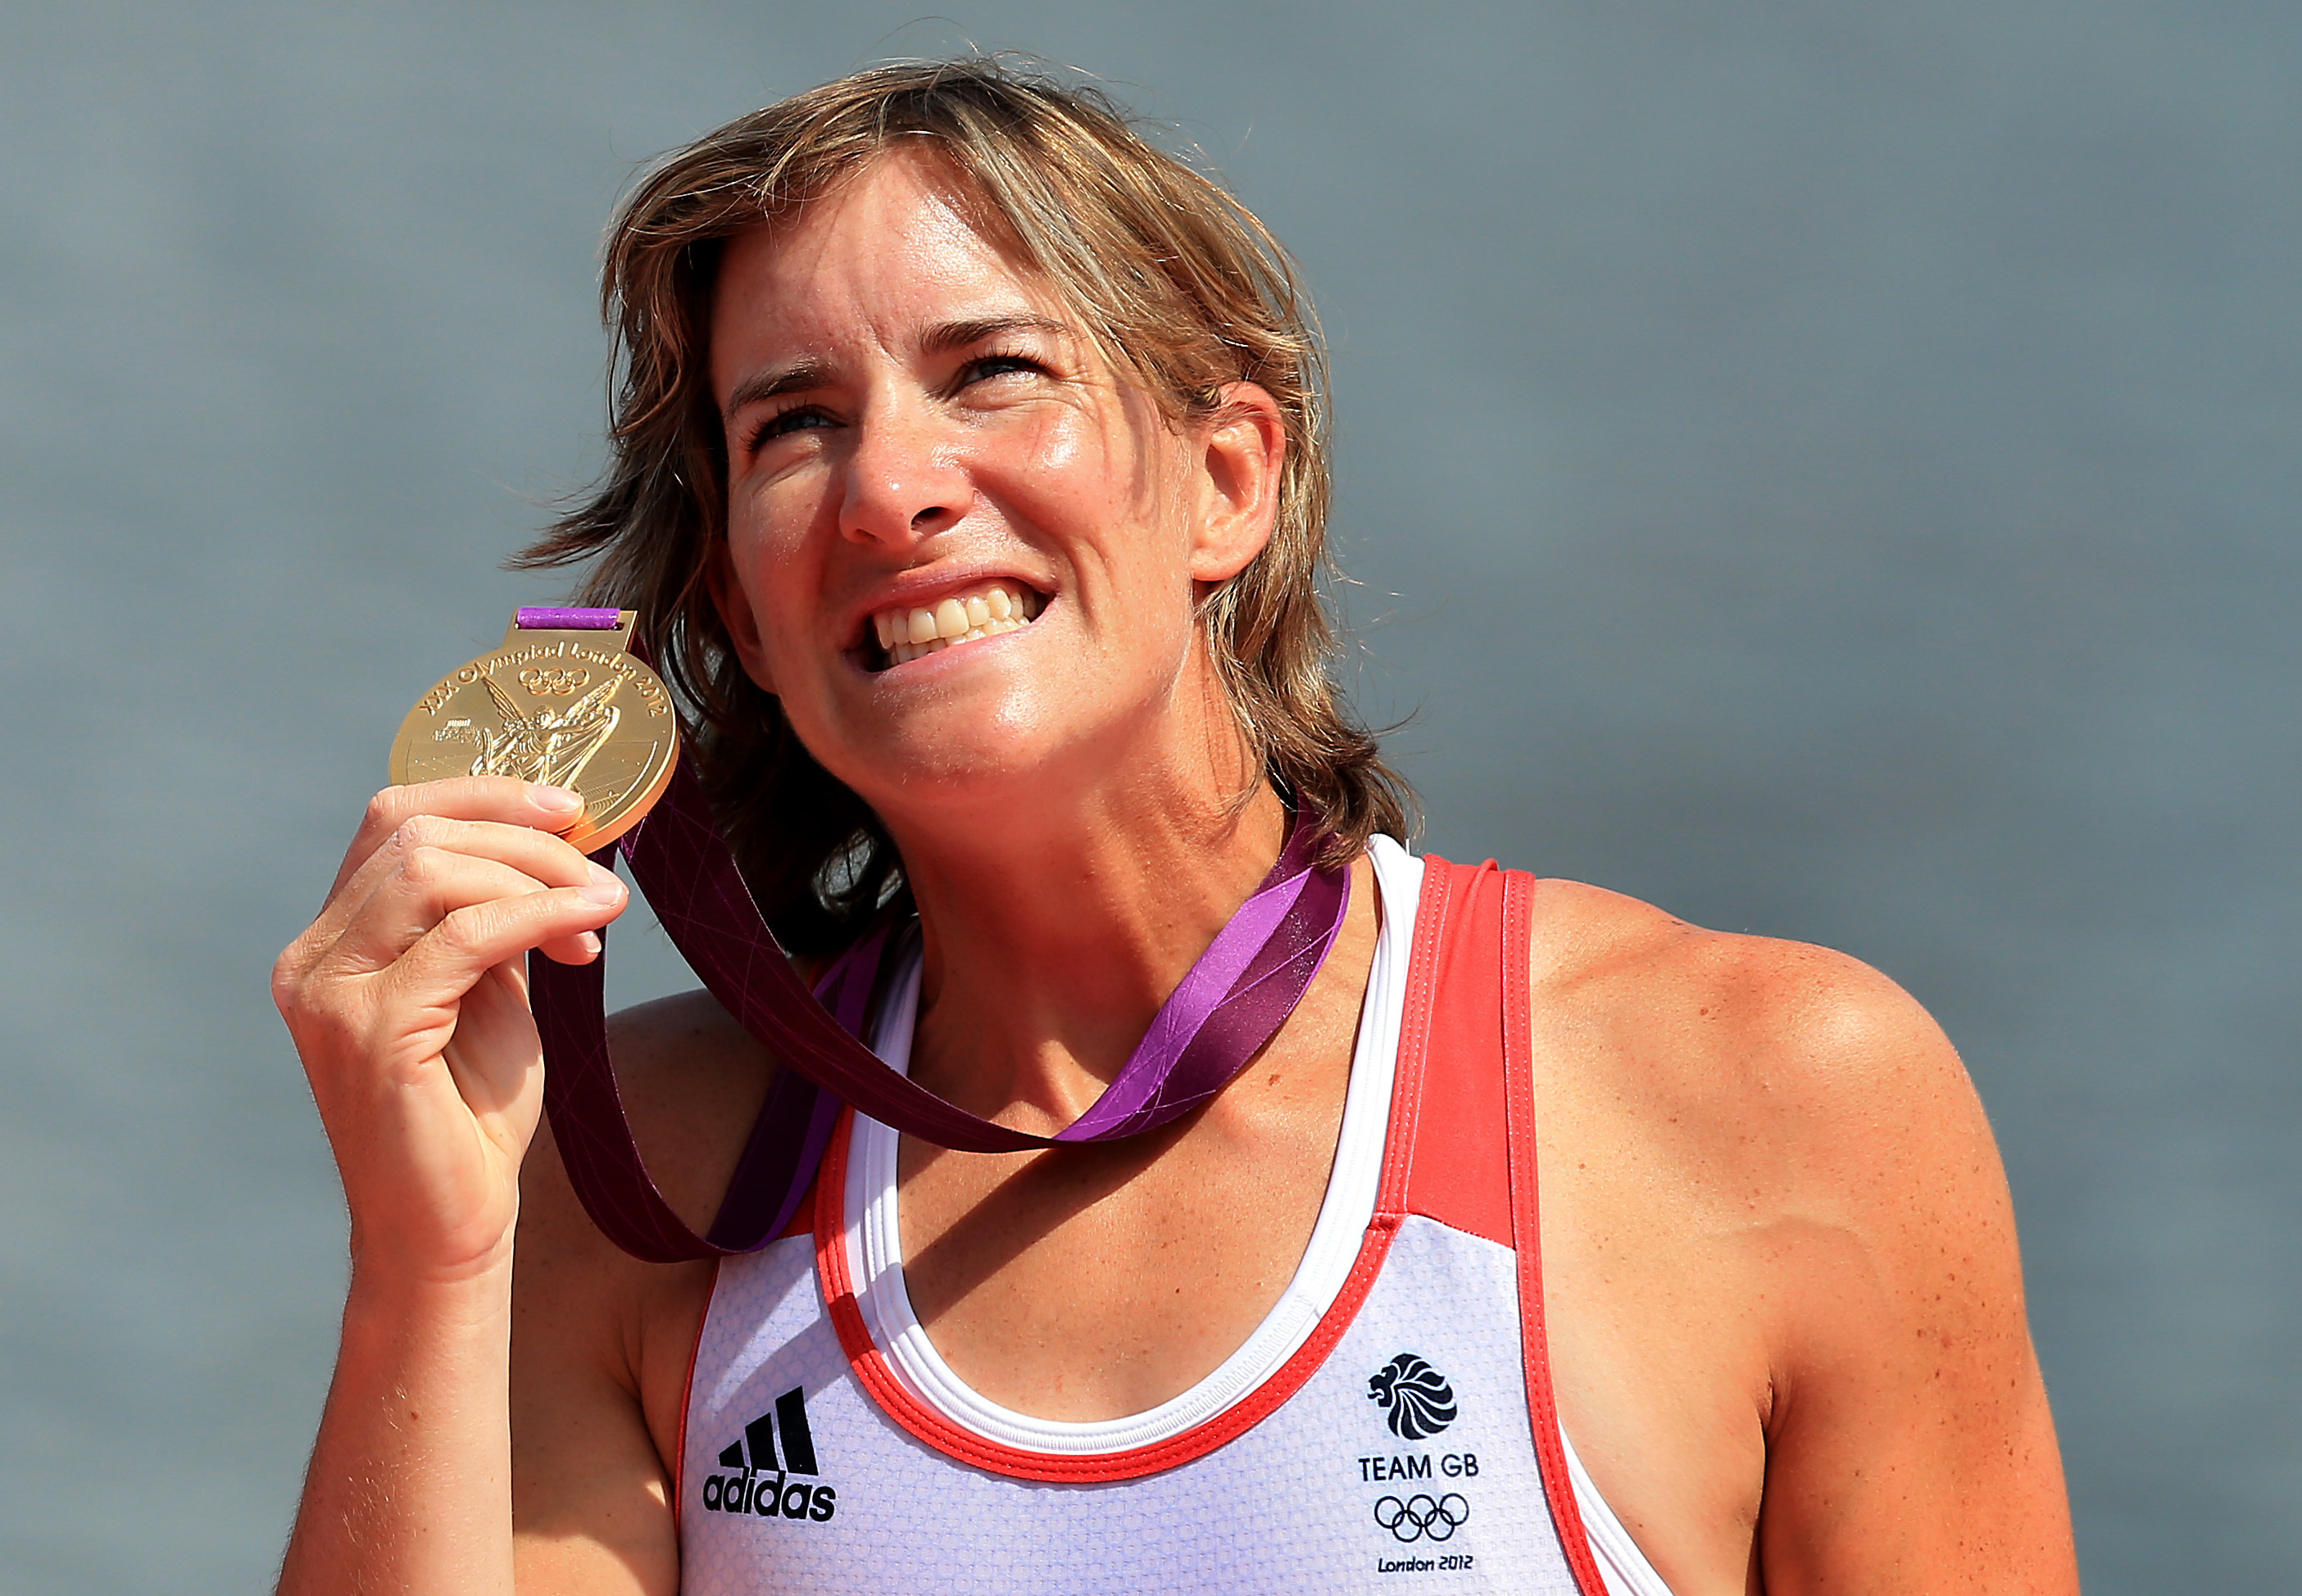 Katherine Grainger with her gold medal at London 2012.